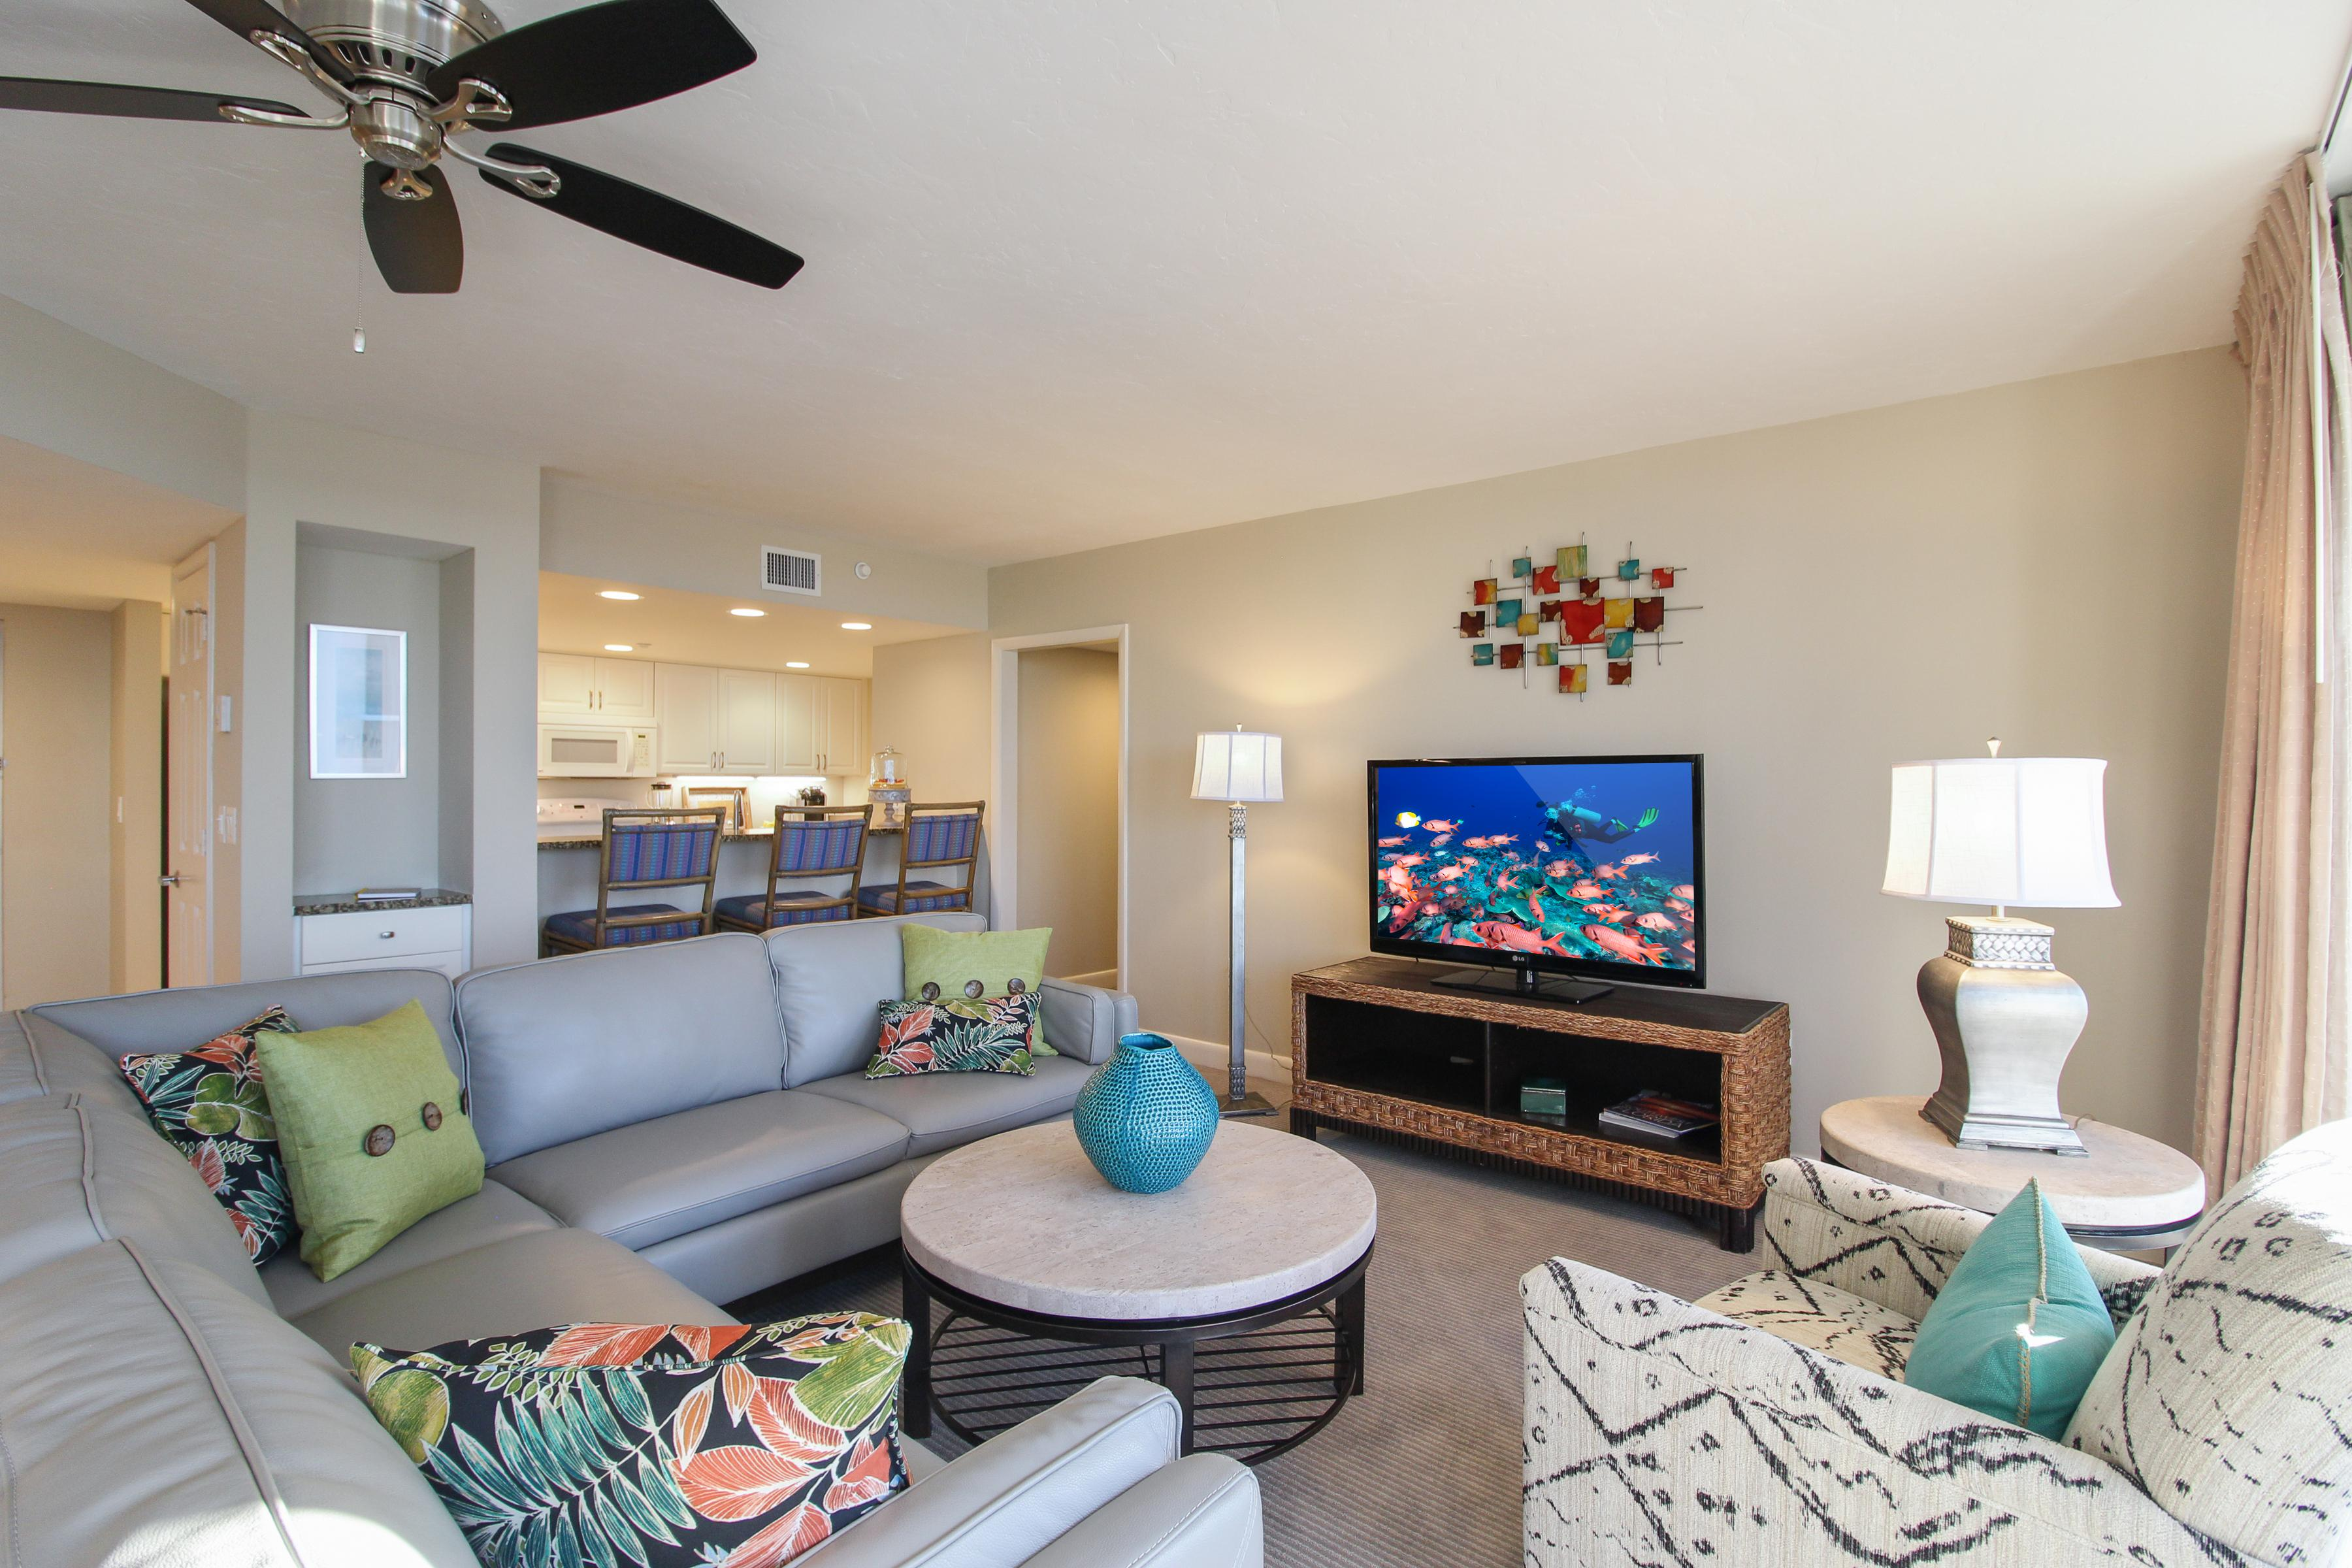 Welcome to Fort Myers Beach! Enjoy a movie night on the large flat screen TV in the living room.